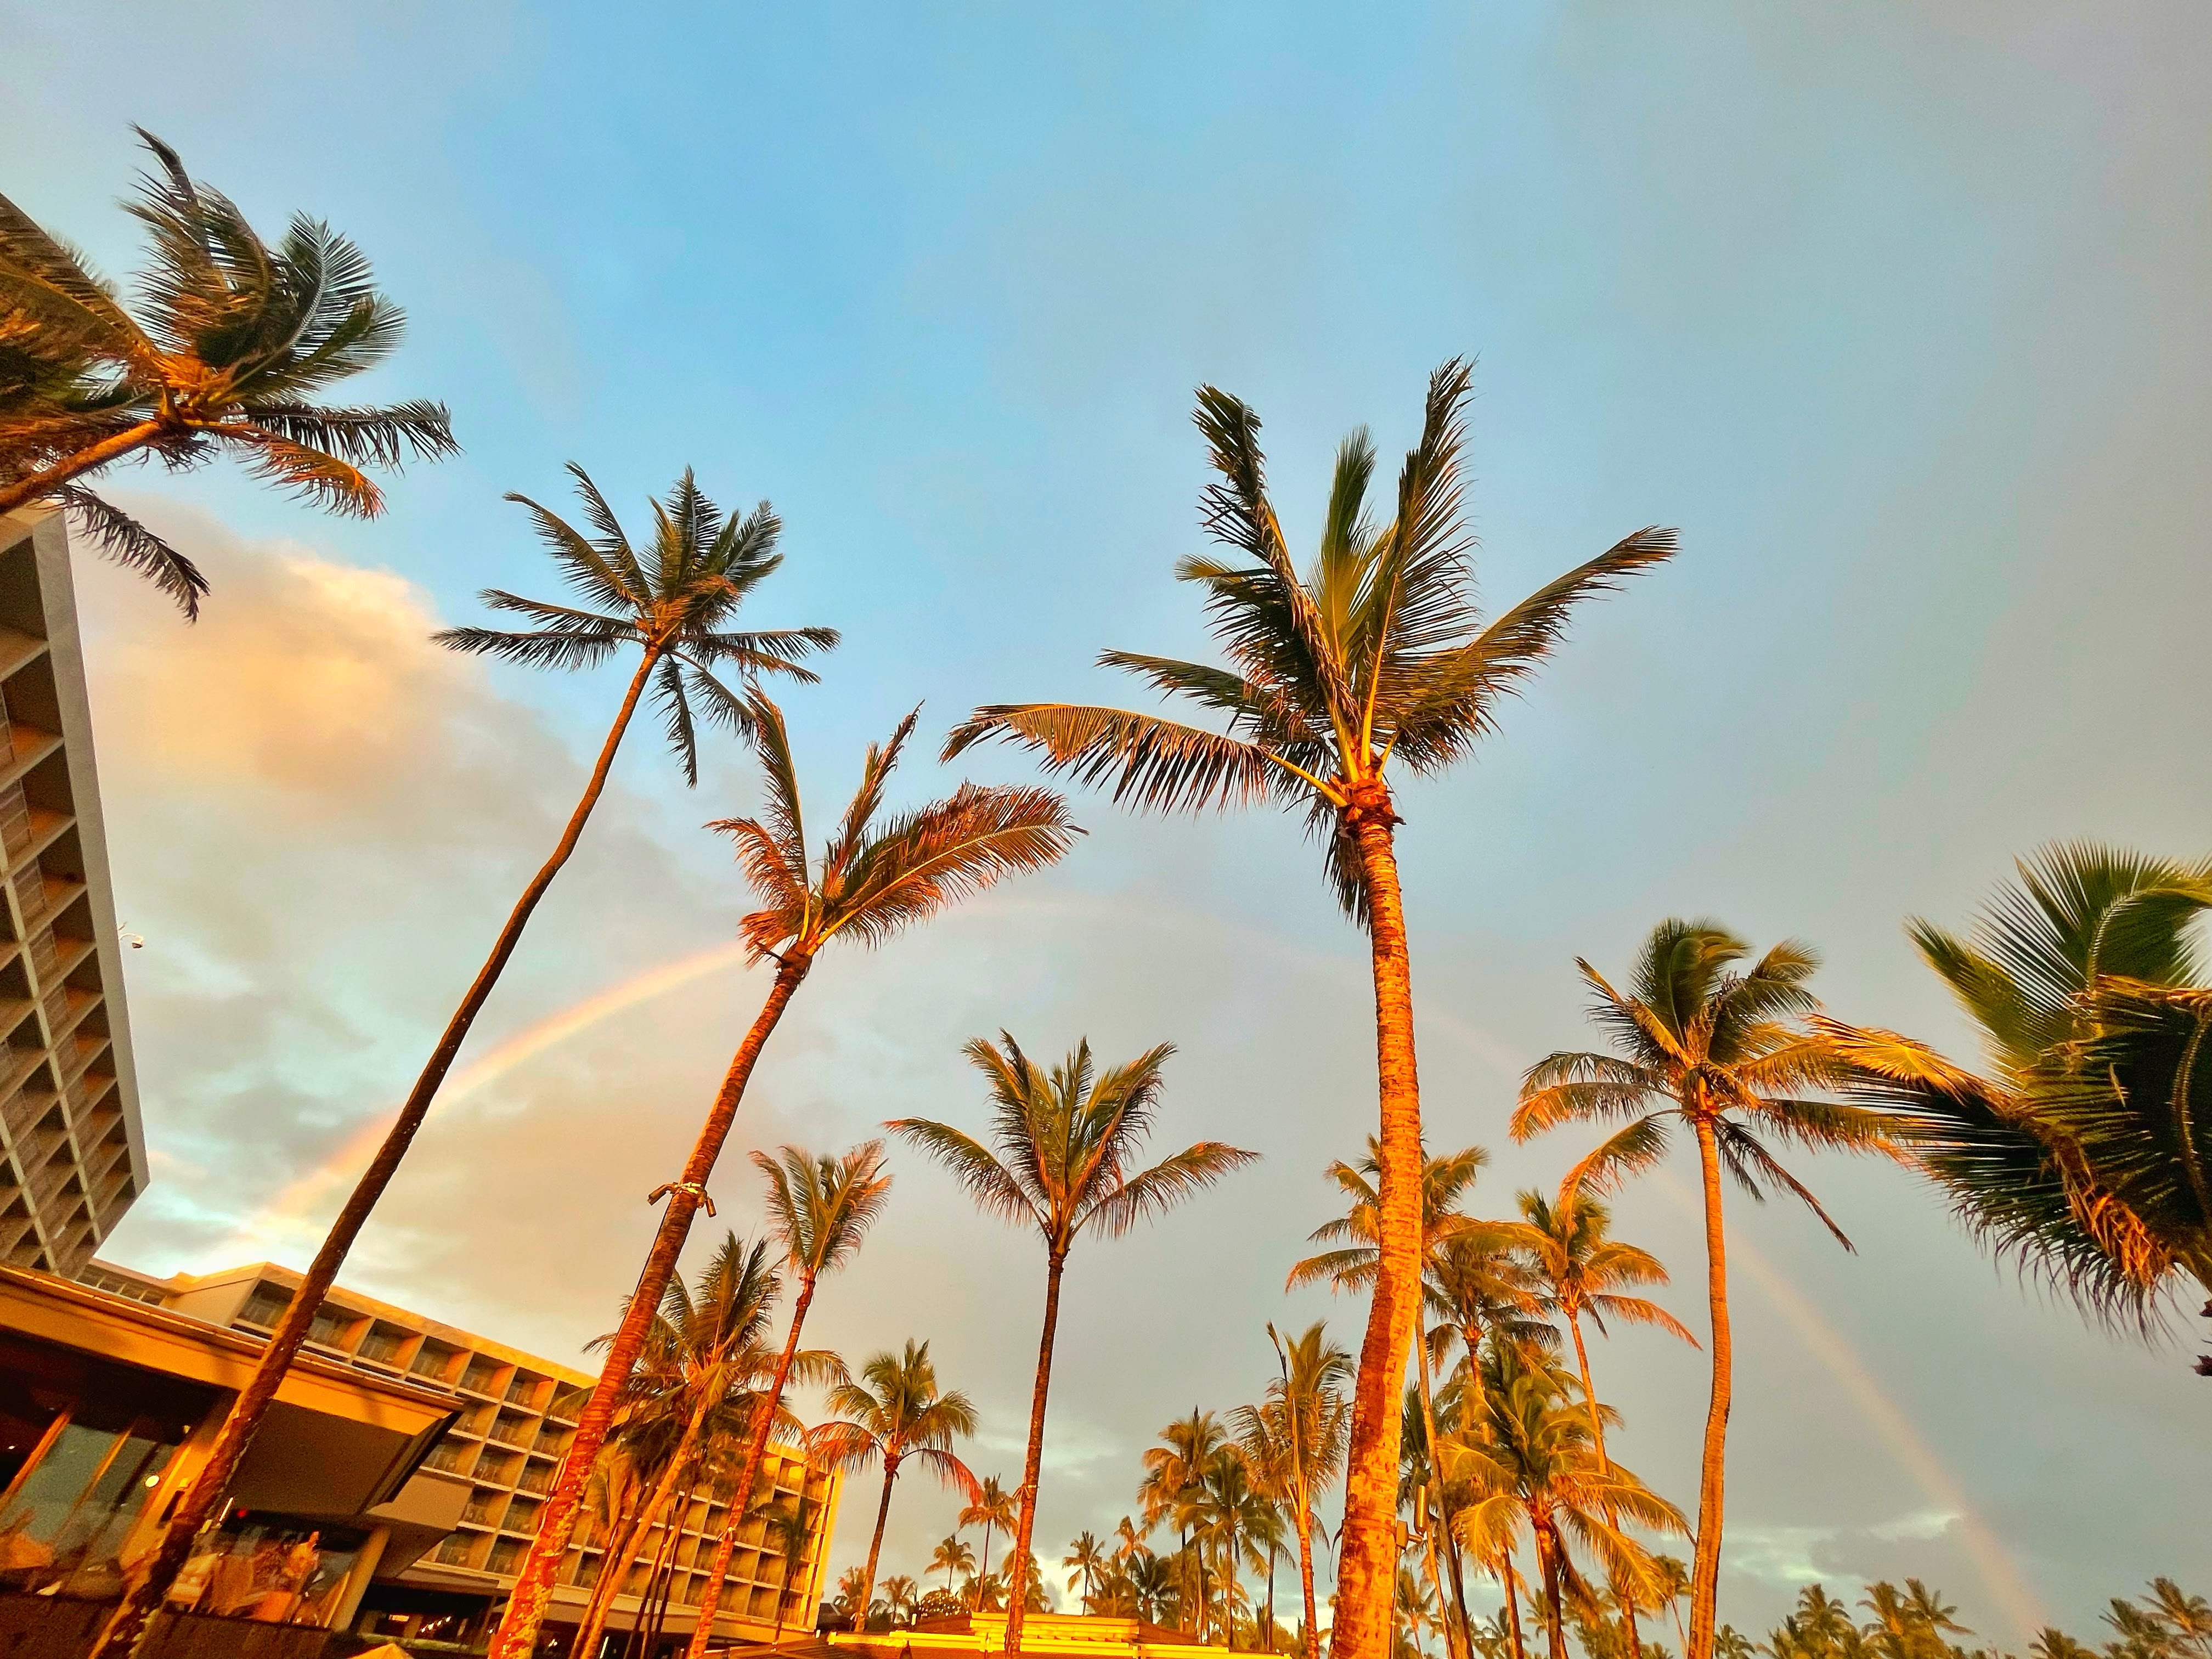 A rainbow appears over the palm trees at Turtle Bay Resort on the North Shore of Oahu